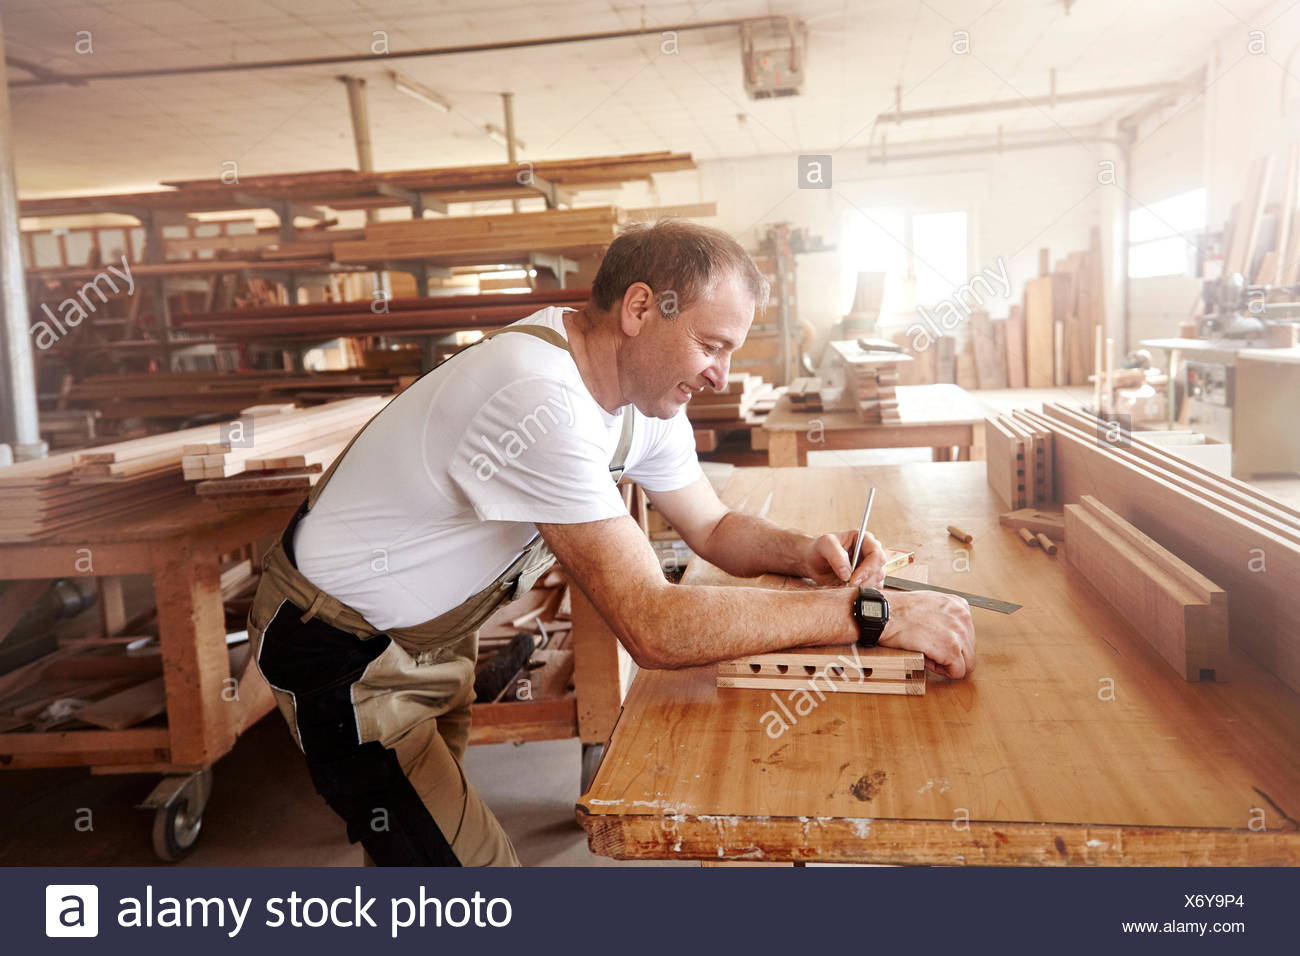 Male carpenter marking wood with pencil at workbench - Stock Image